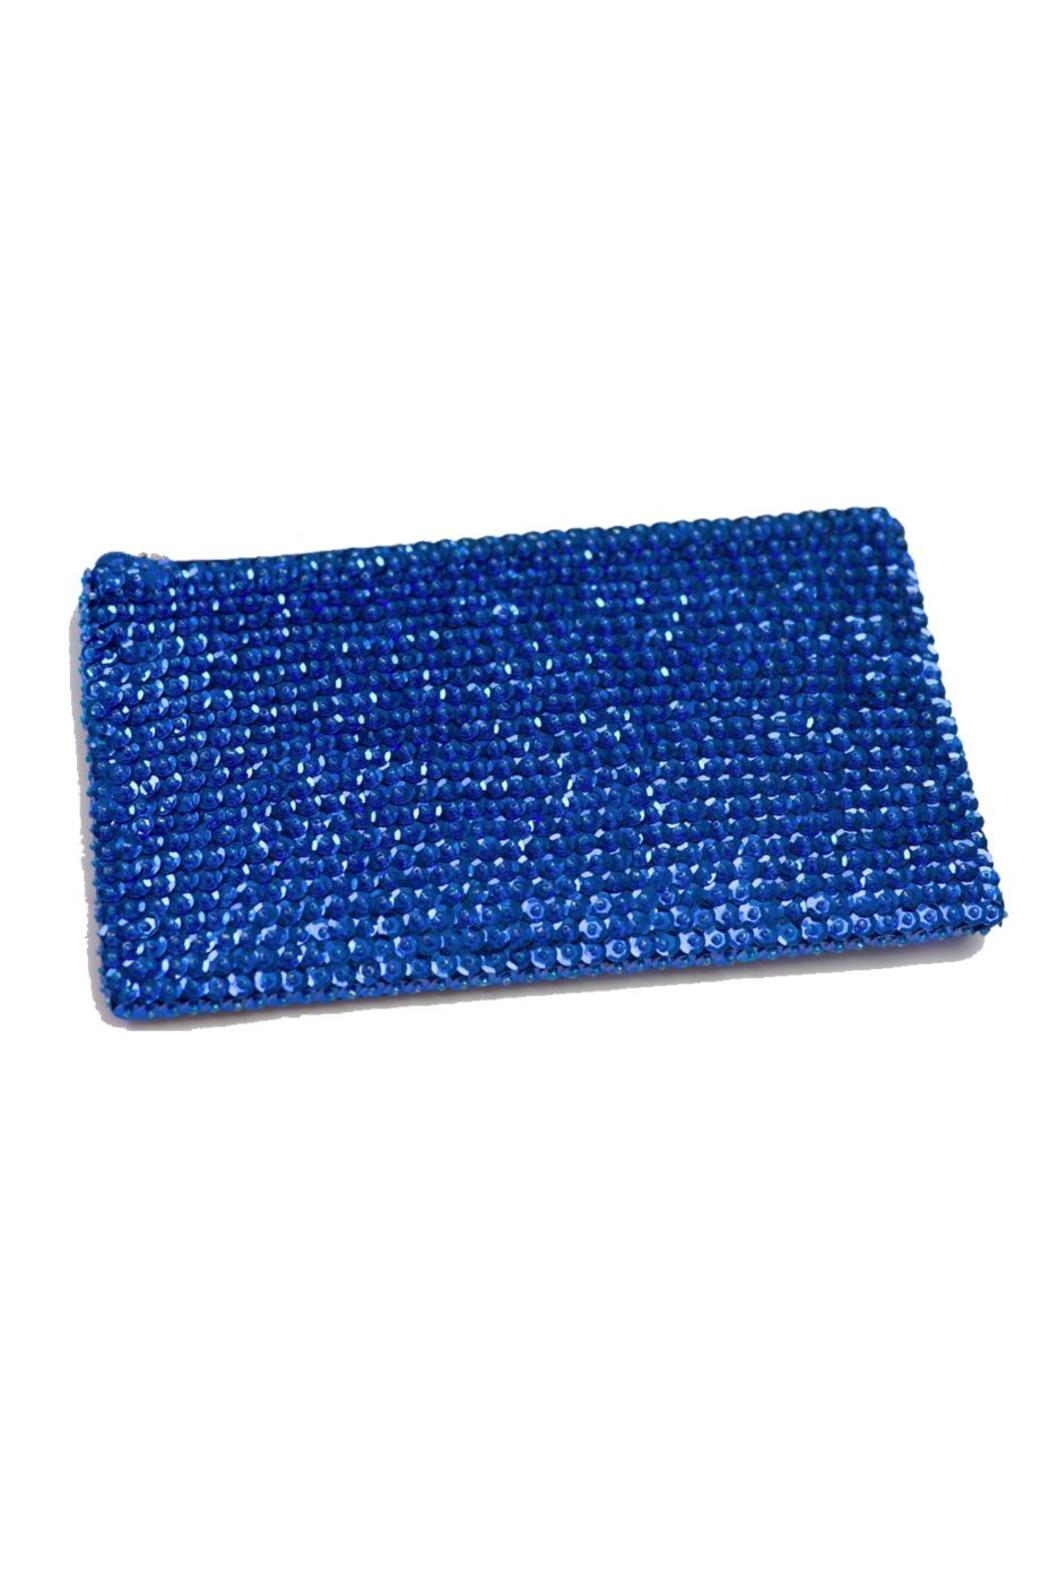 tu-anh Electric Blue Clutch - Main Image